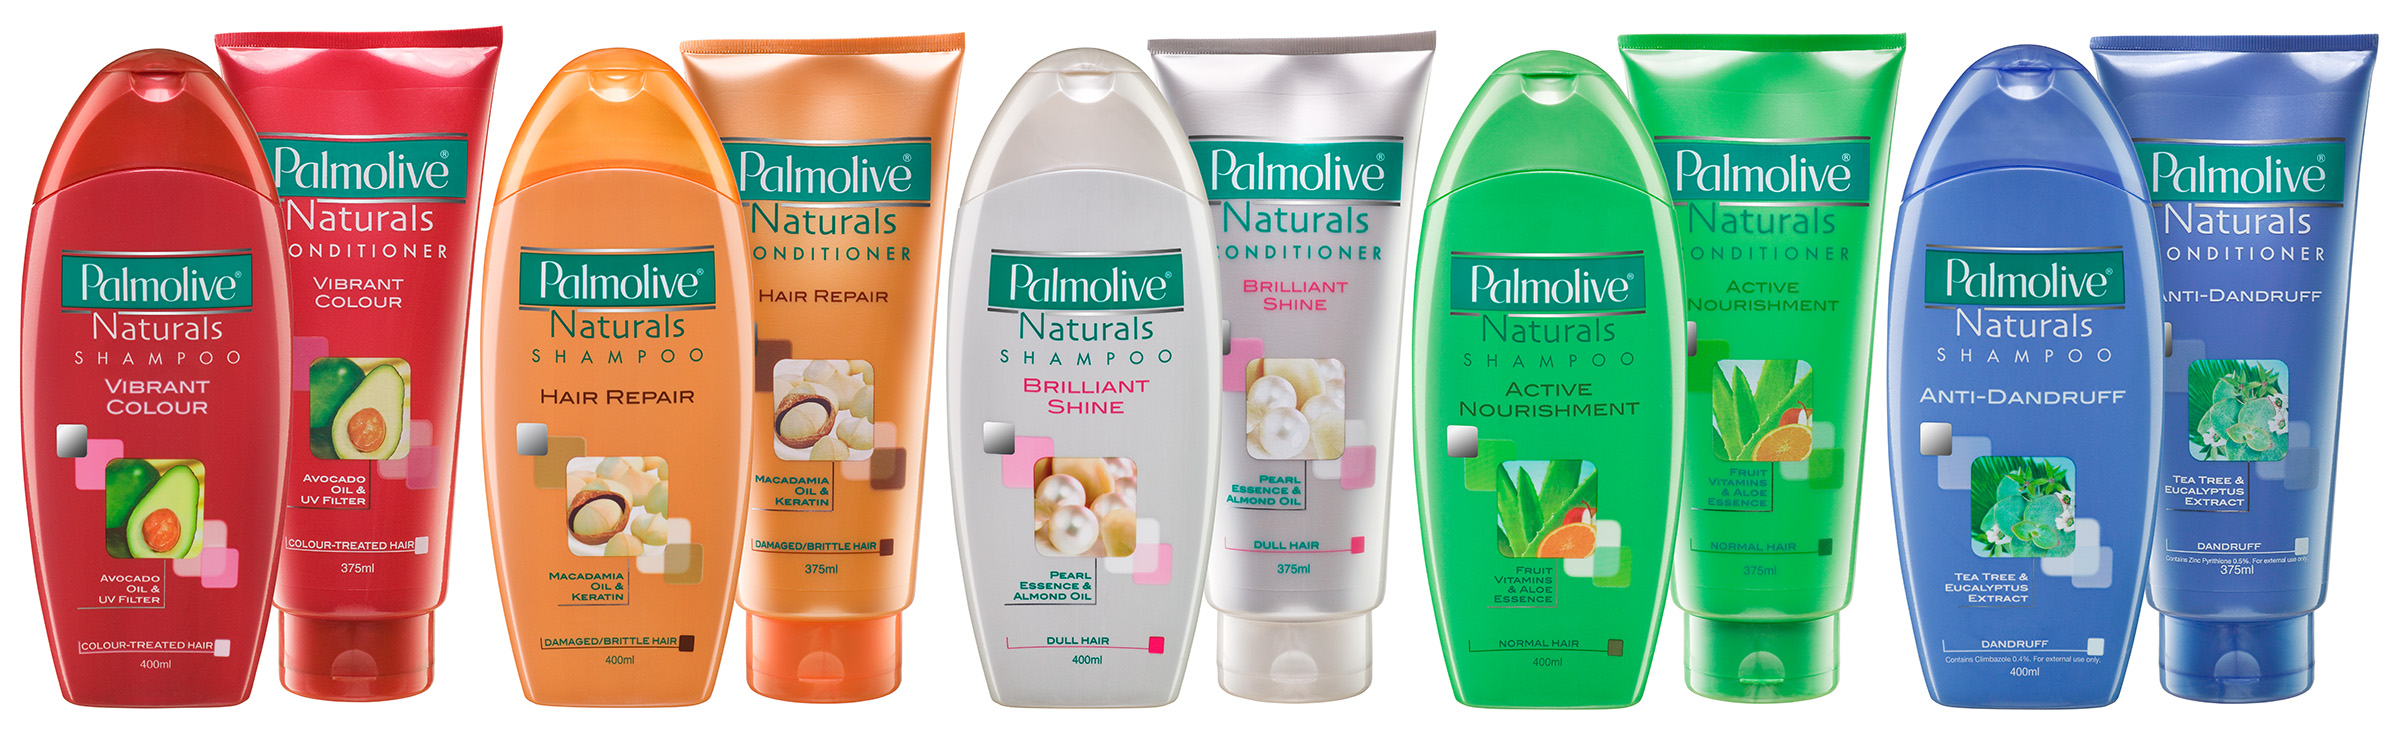 Advertising studio product photography of Palmolive Naturals Shampoo and Conditioner range